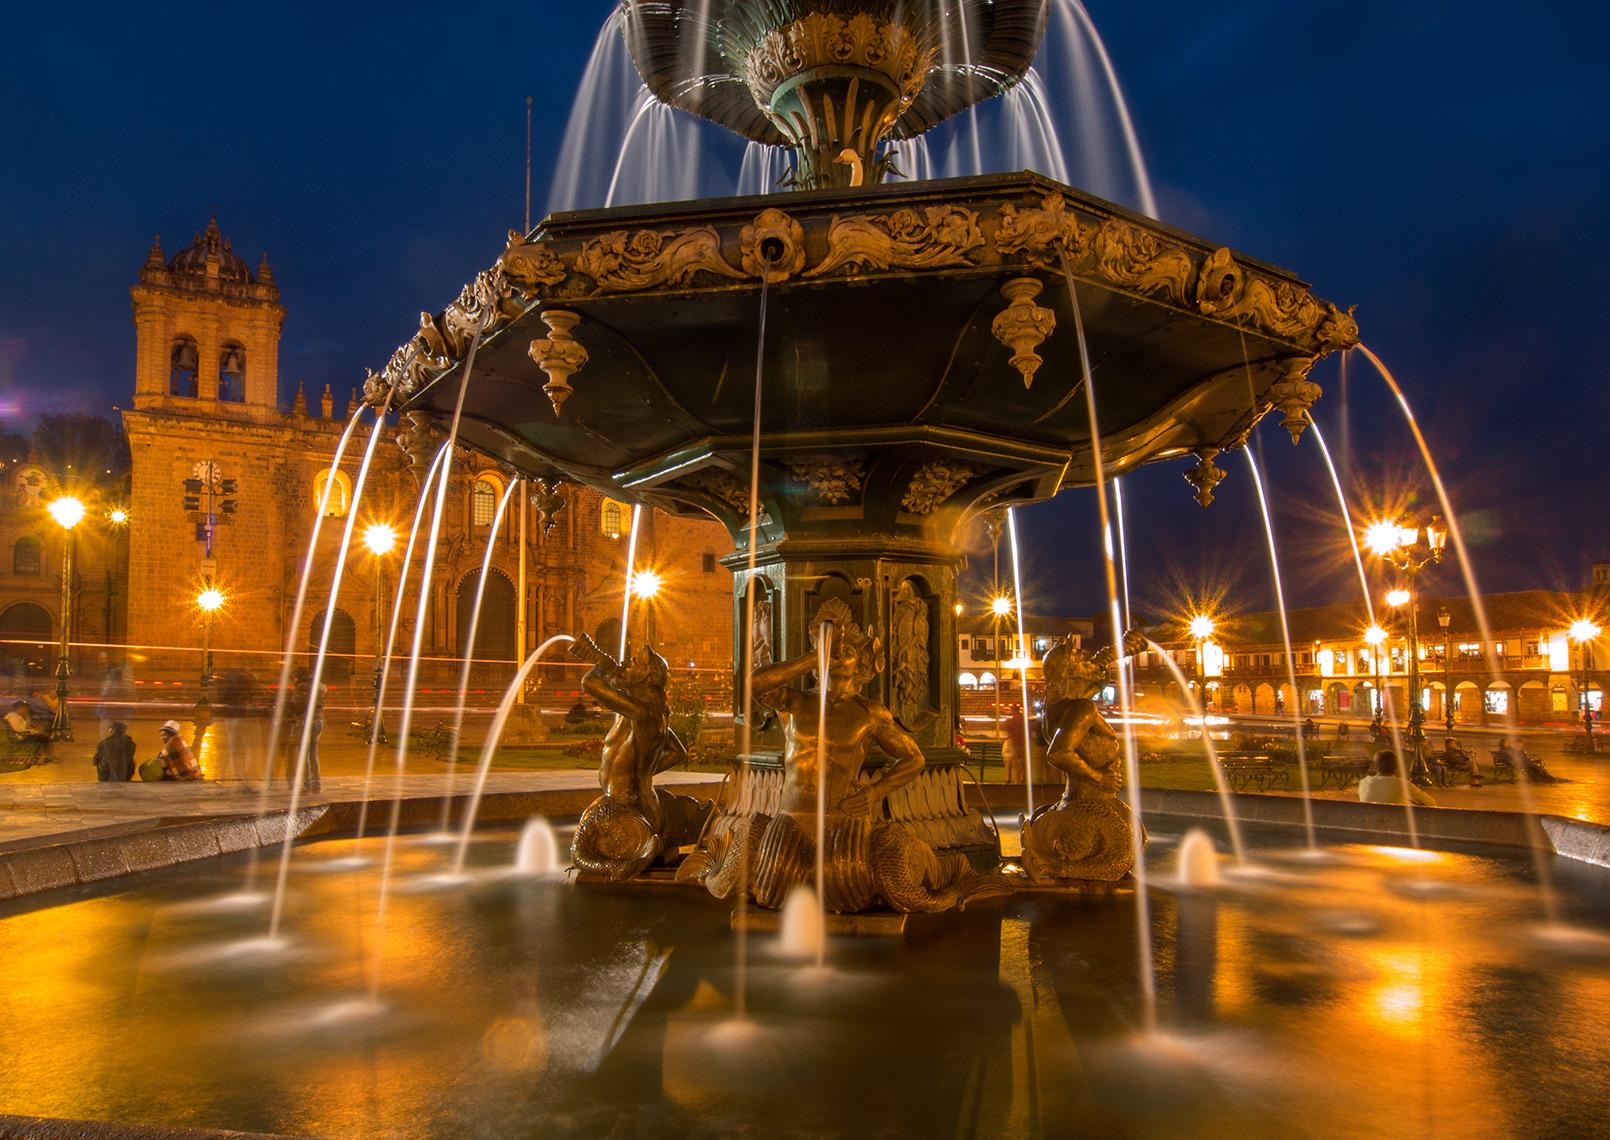 Fountain in Plaza de Armas